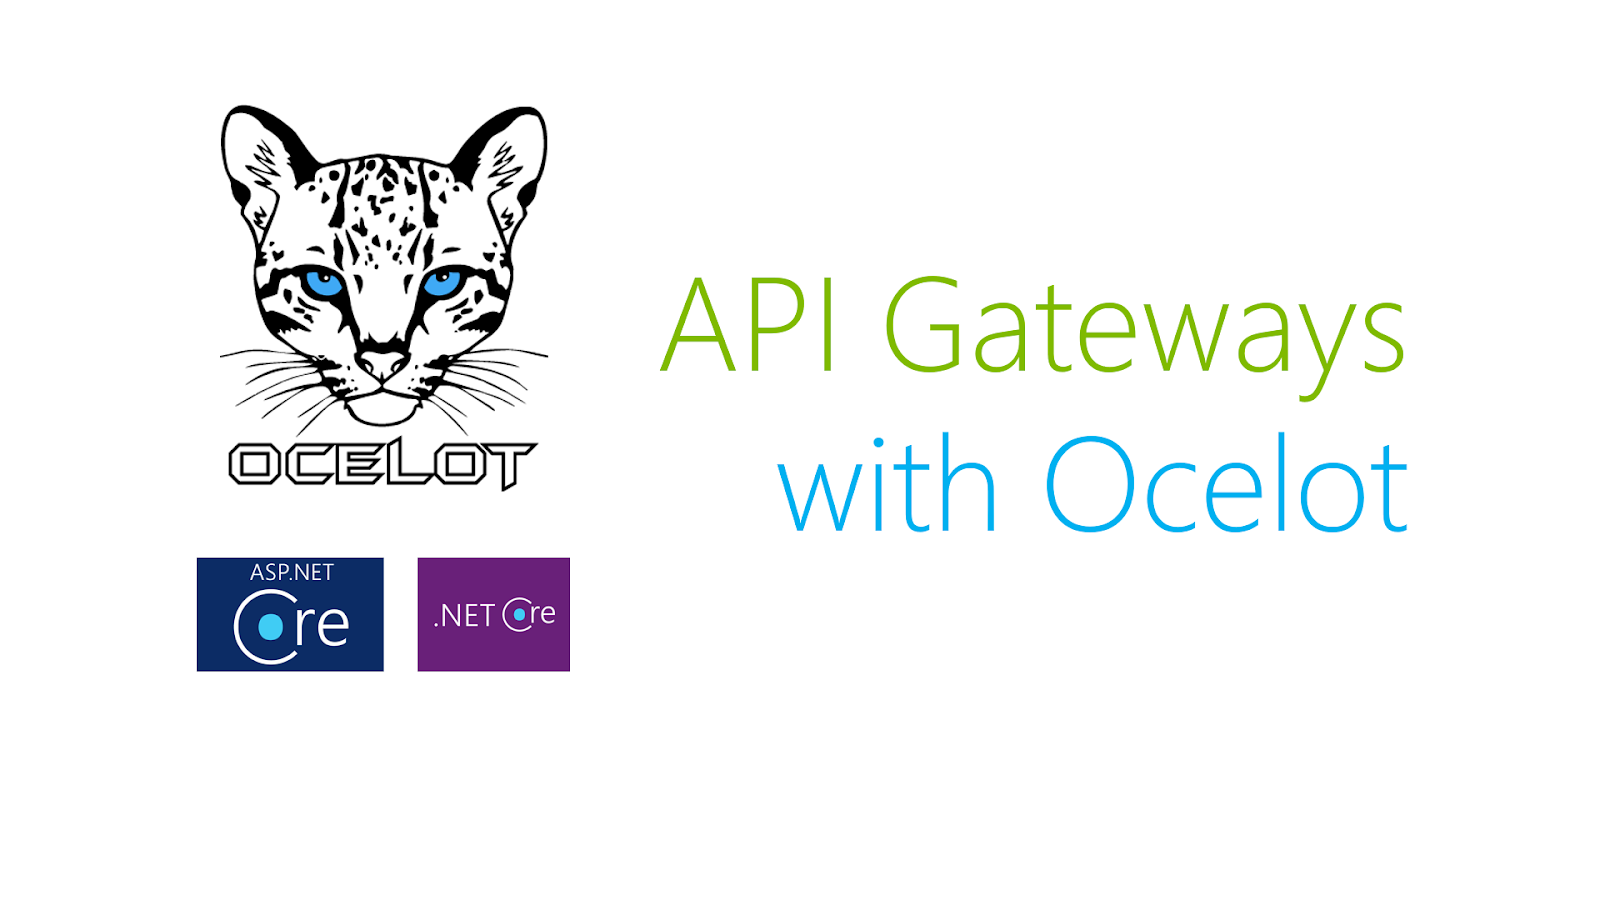 Containerizing ASP net core API Gateways